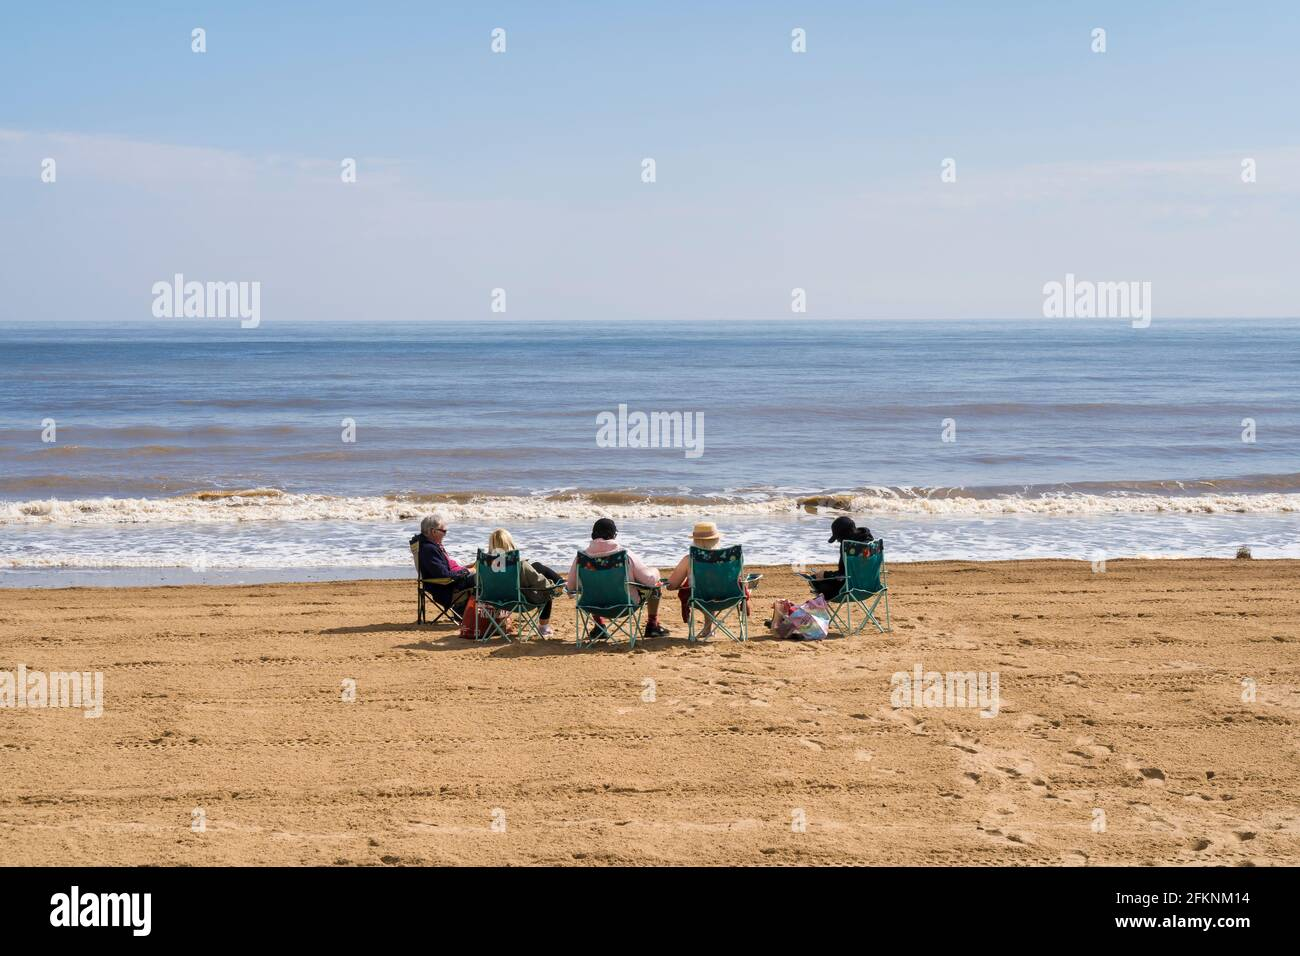 family-enjoying-day-out-on-mablethorpe-beach-lincolnshire-2FKNM14.jpg